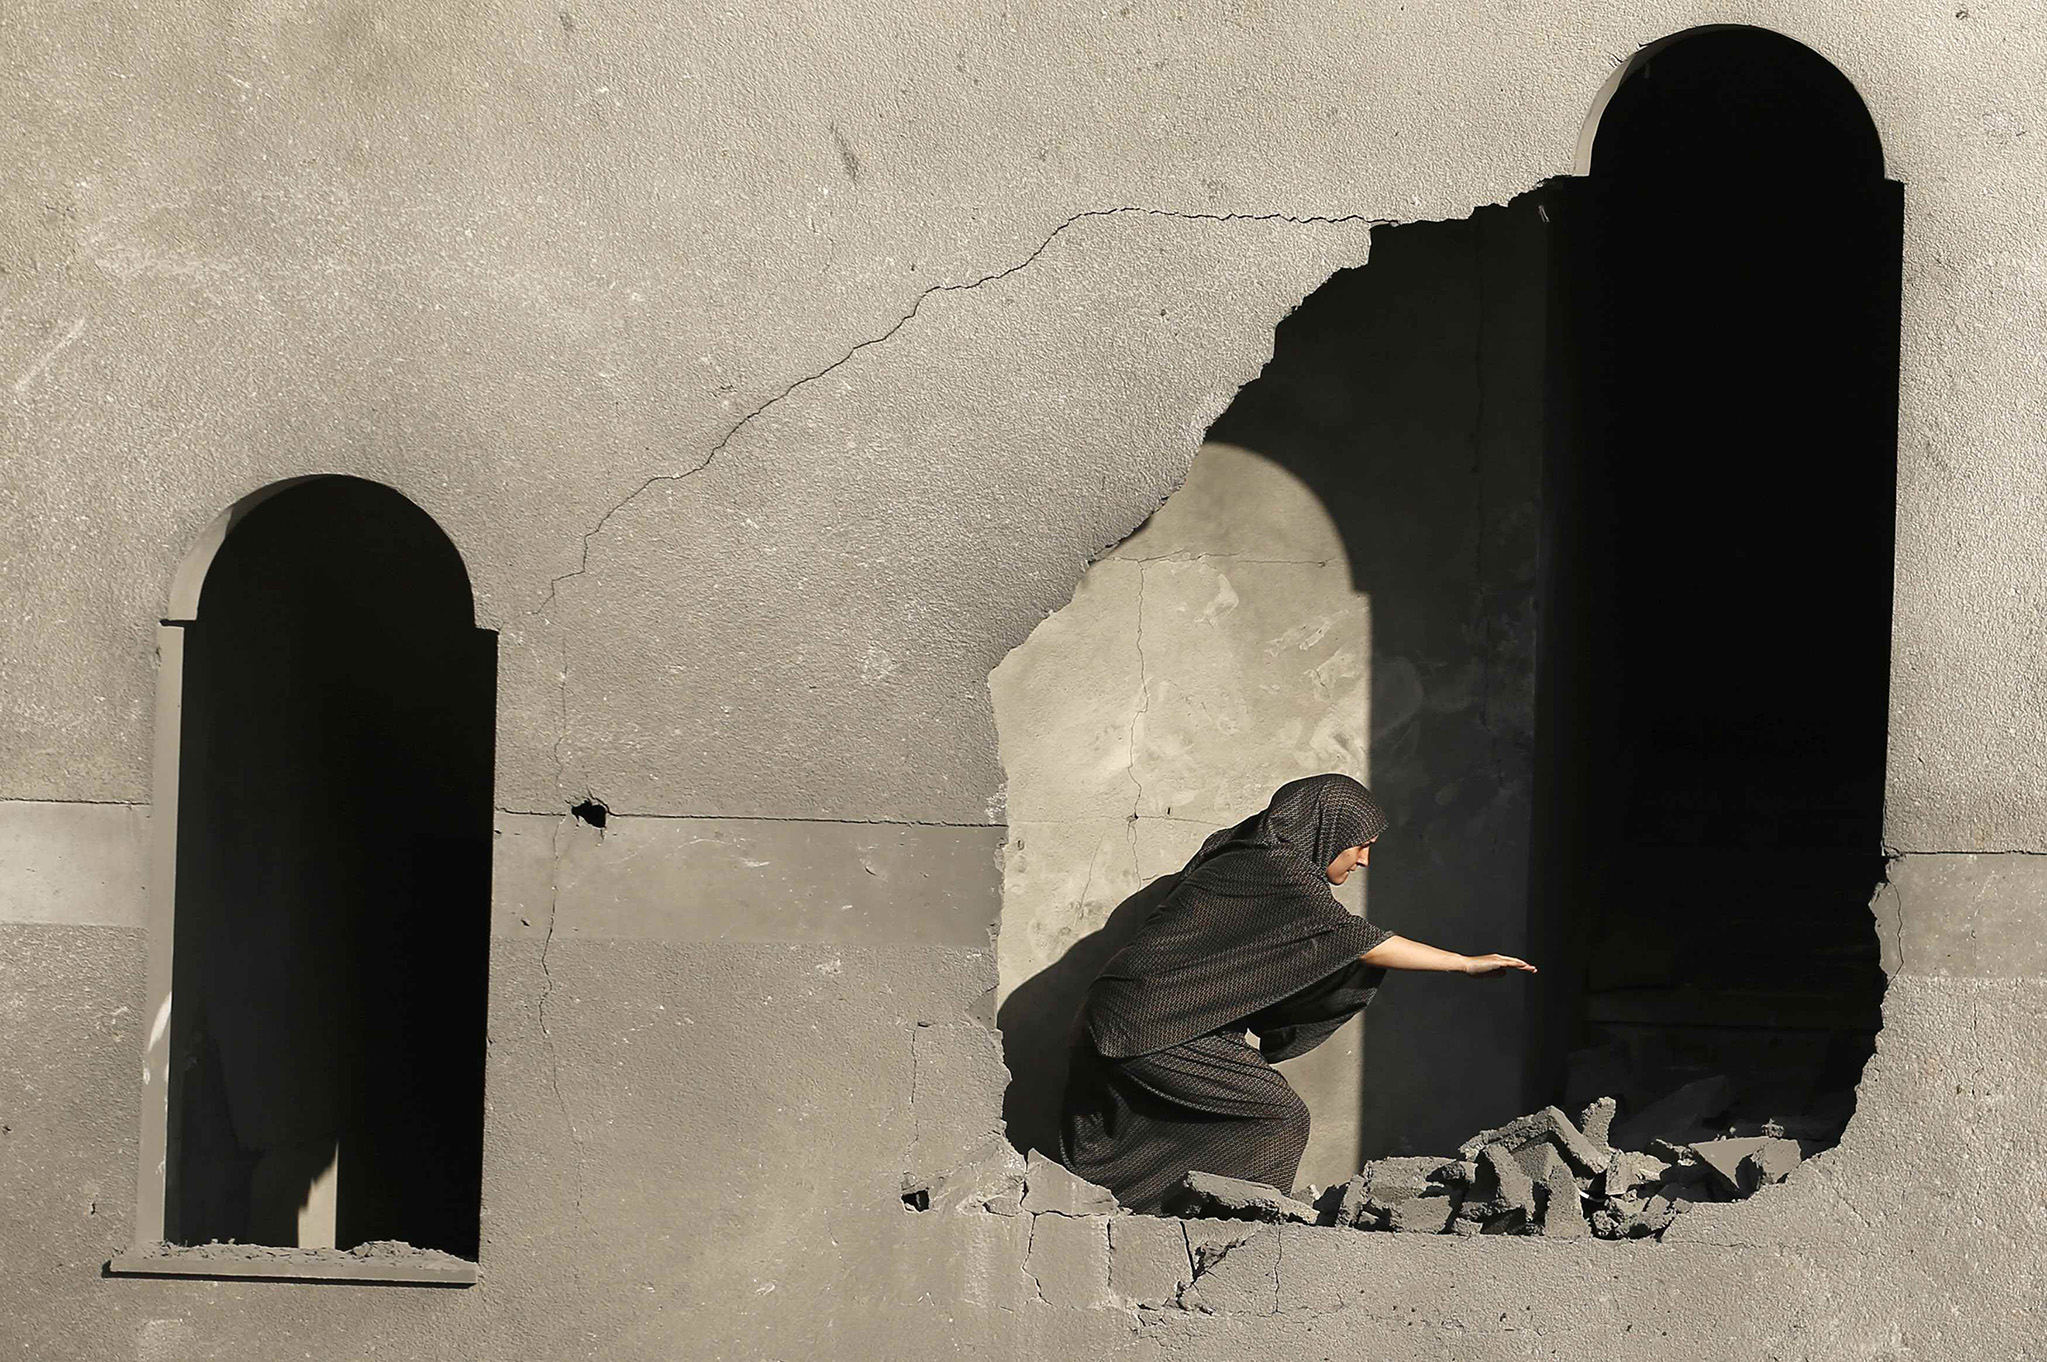 A Palestinian woman inspects her house that witnesses said was damaged during an Israeli airstrike in Gaza City